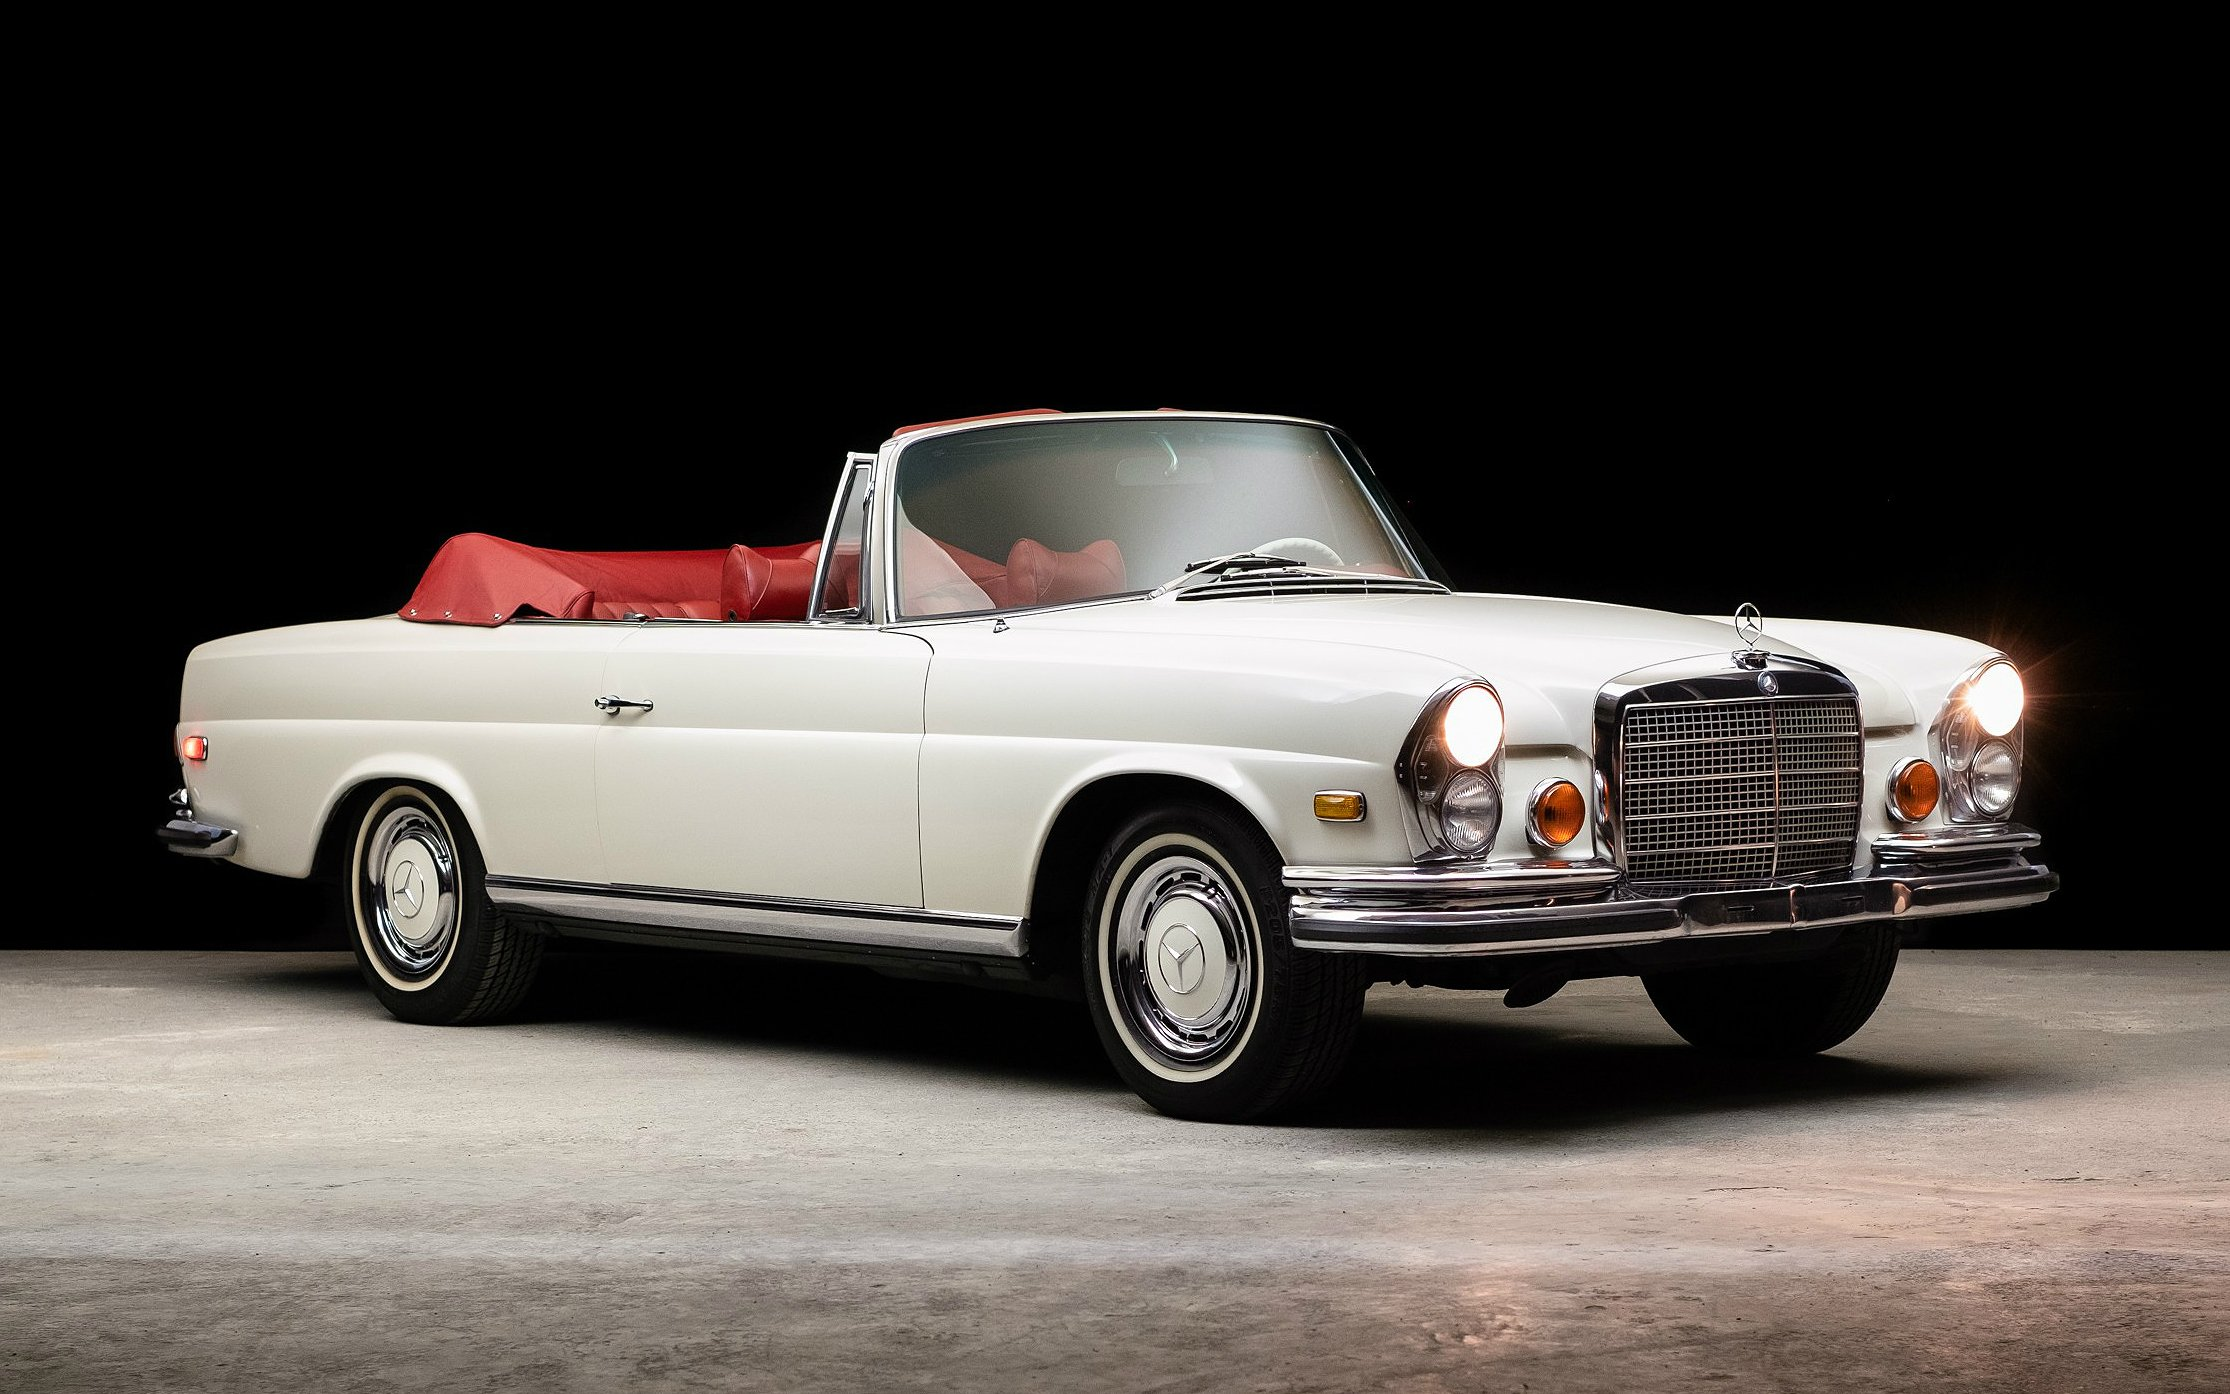 1970 Mercedes-Benz 280 SE Convertible